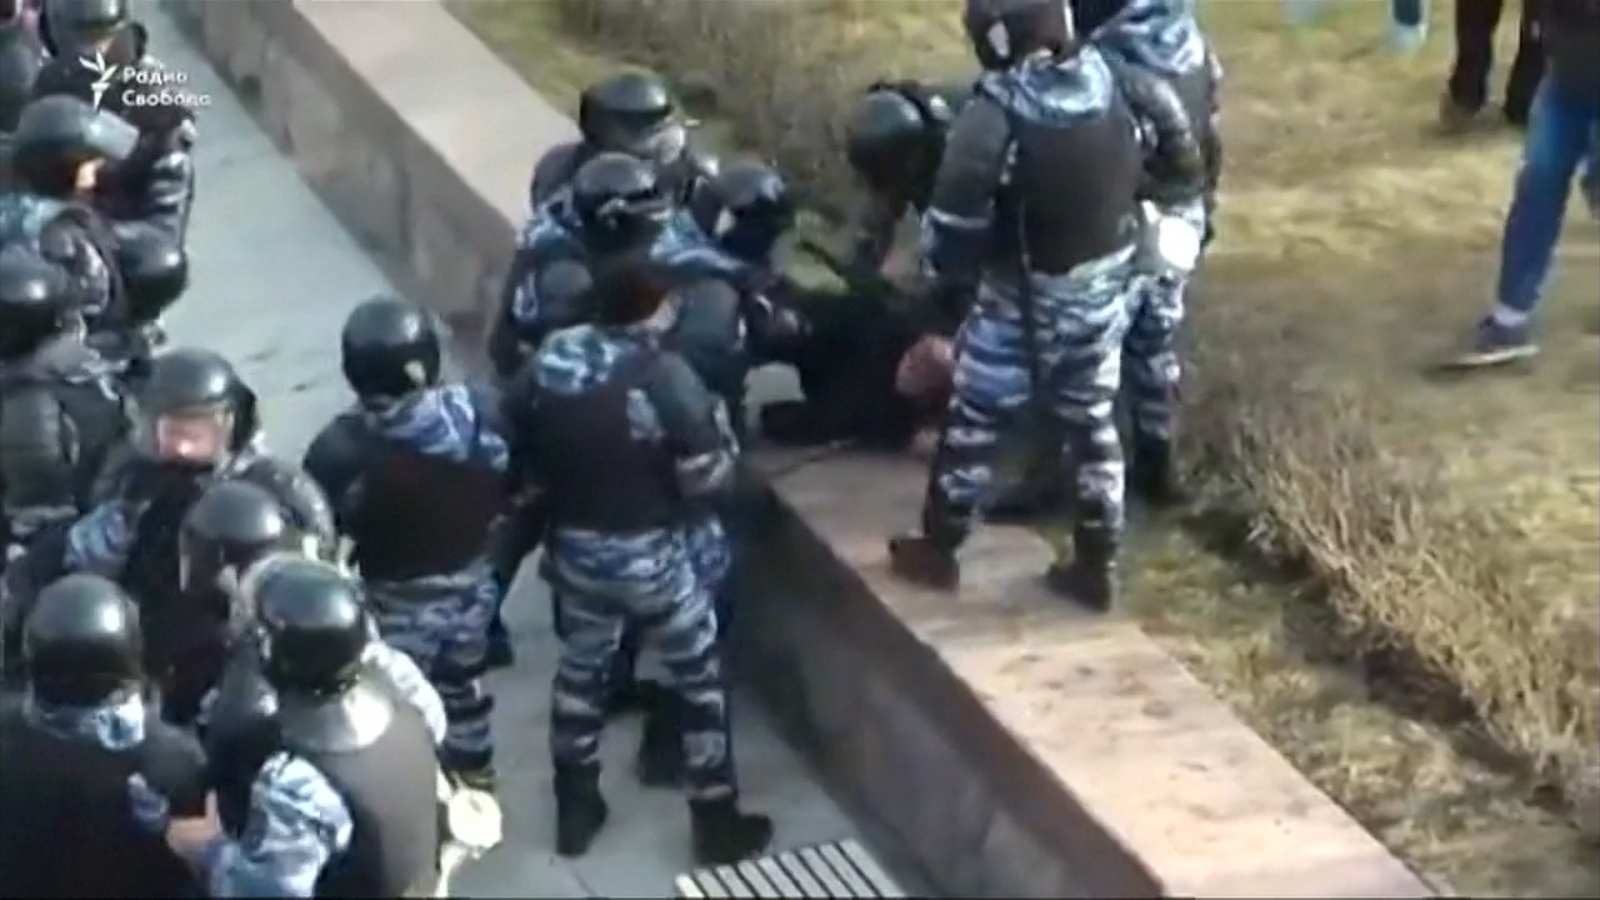 Police in Moscow beat protester at anti-corruption rally